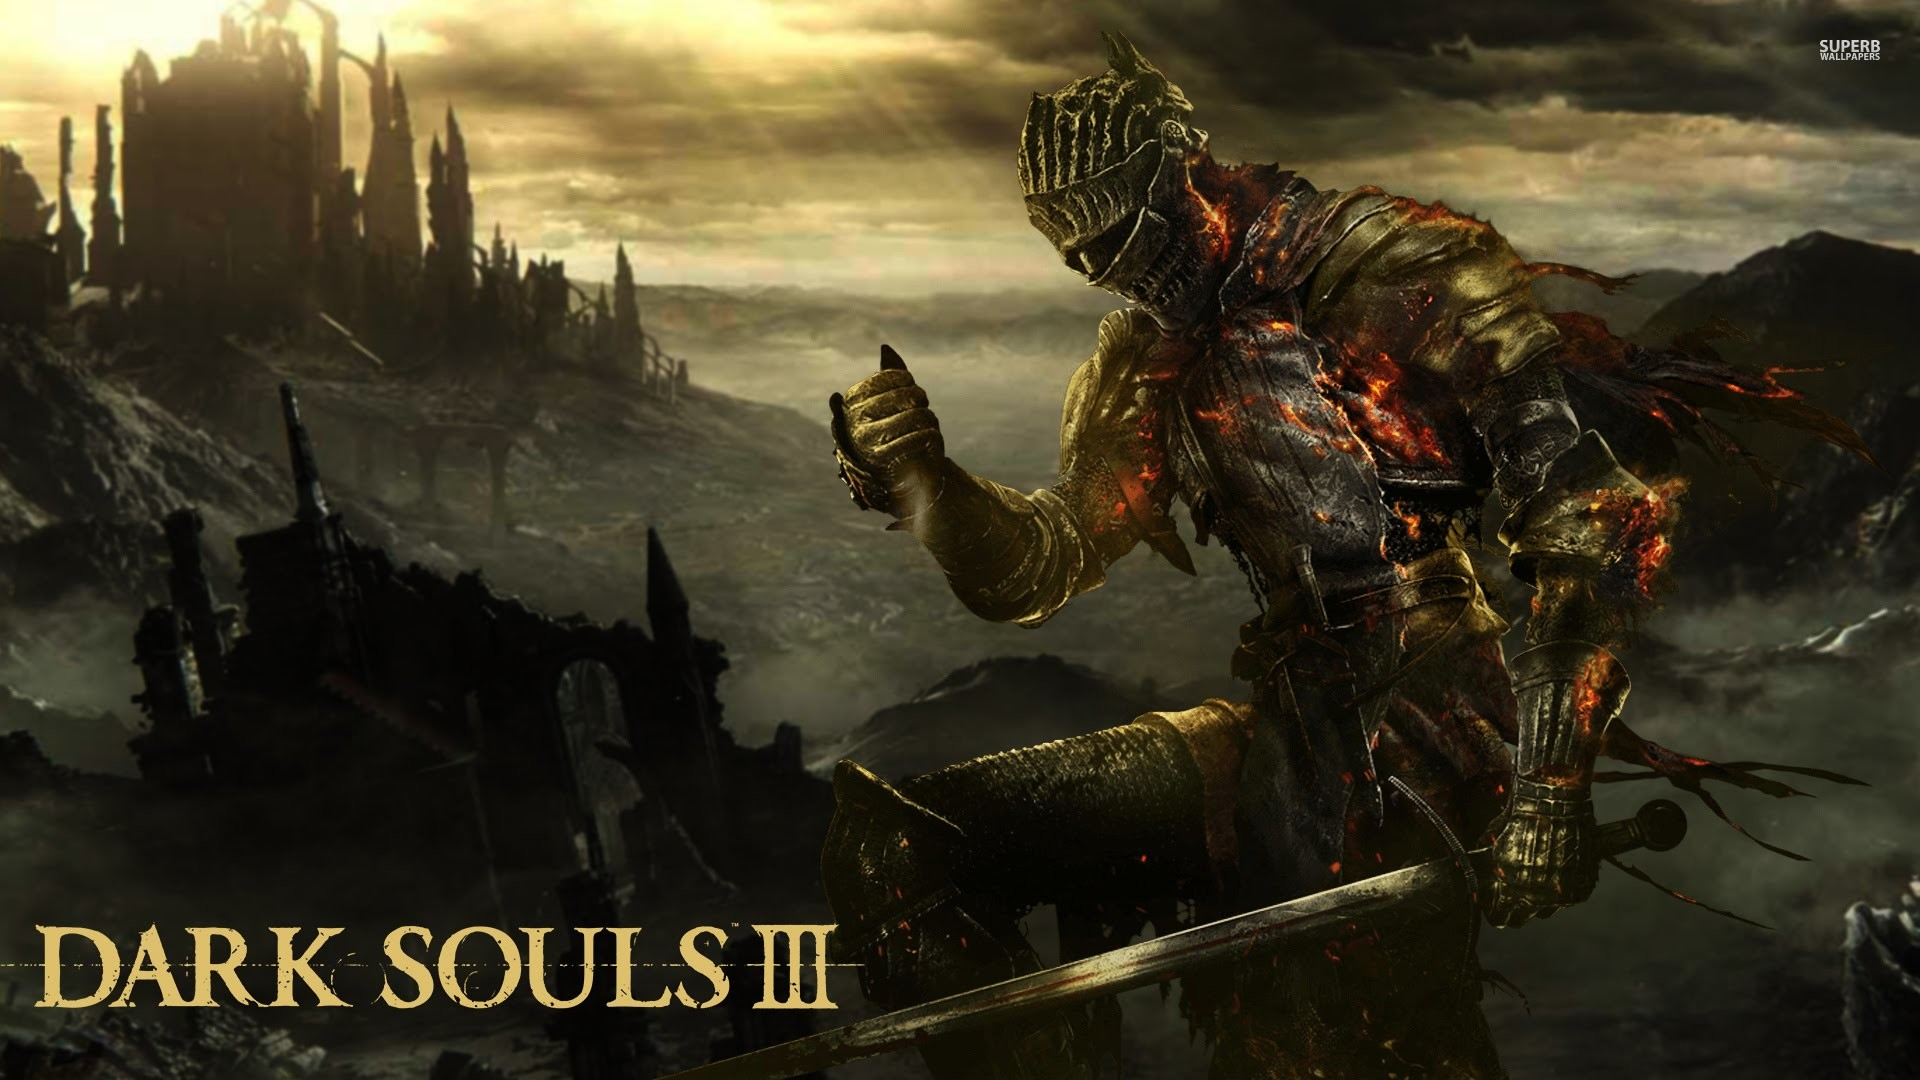 1920x1080 Dark Souls Live Wallpaper